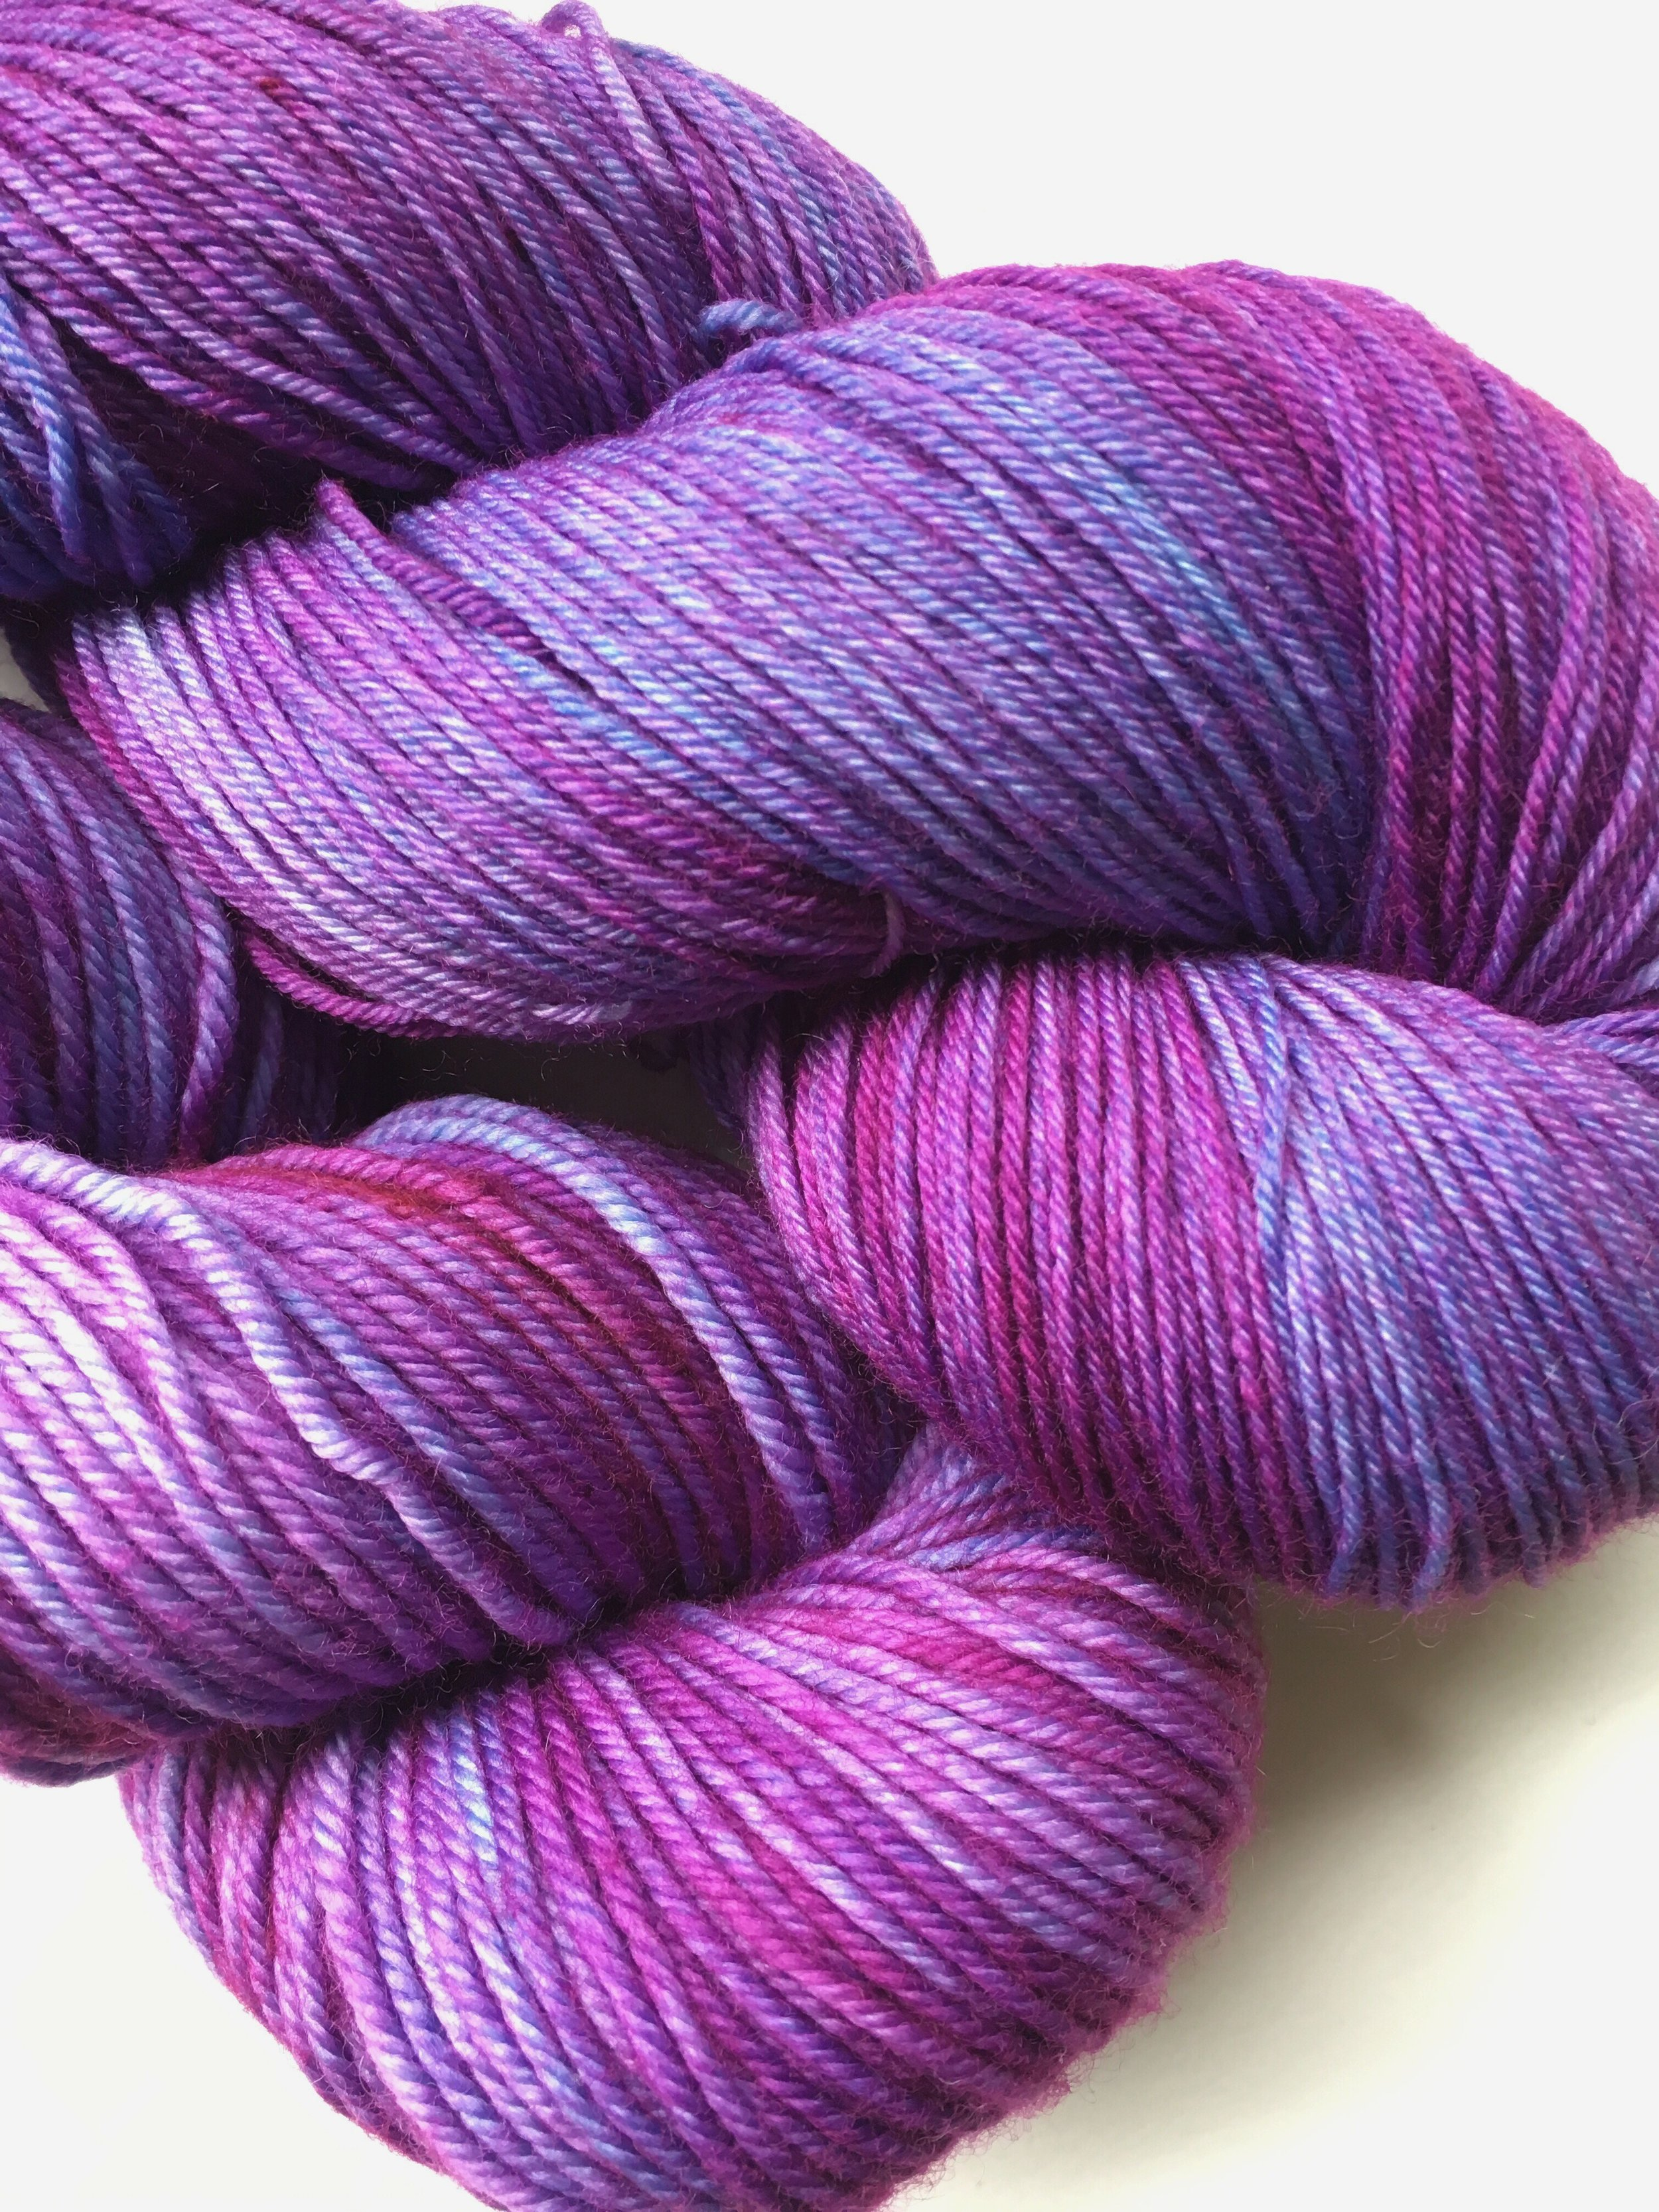 Wolfsbane  Shades of blue, purple, and magenta, reminiscent of the wolfsbane flower. Shown on Sheepy Feet and Big Feet.